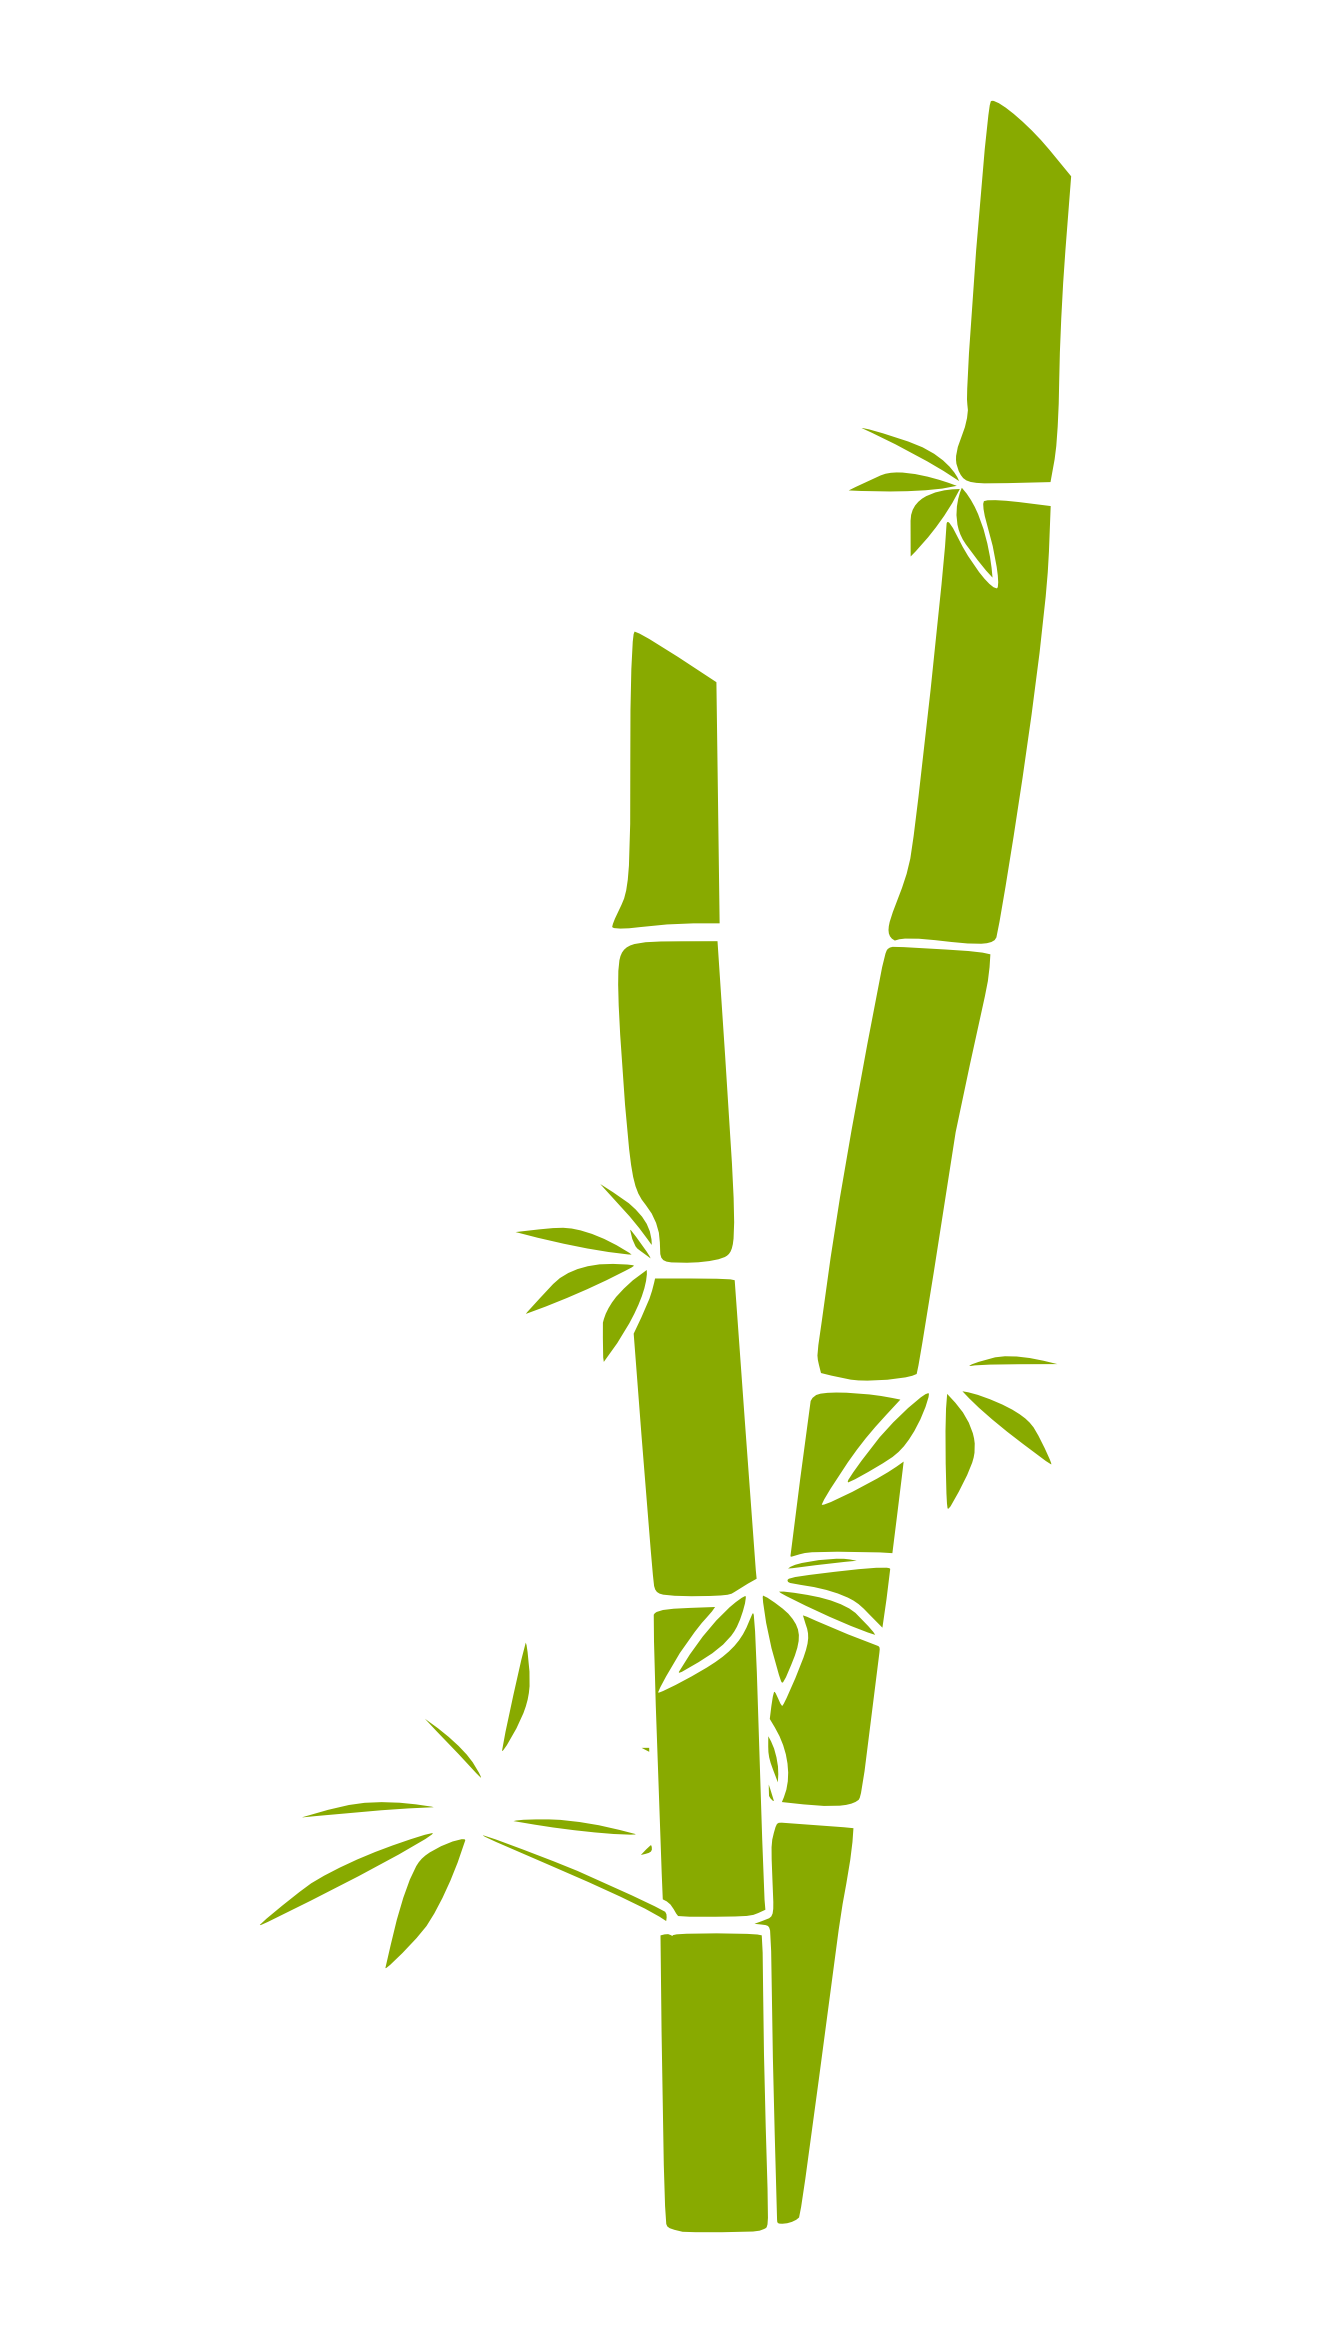 Bamboo clipart #13, Download drawings